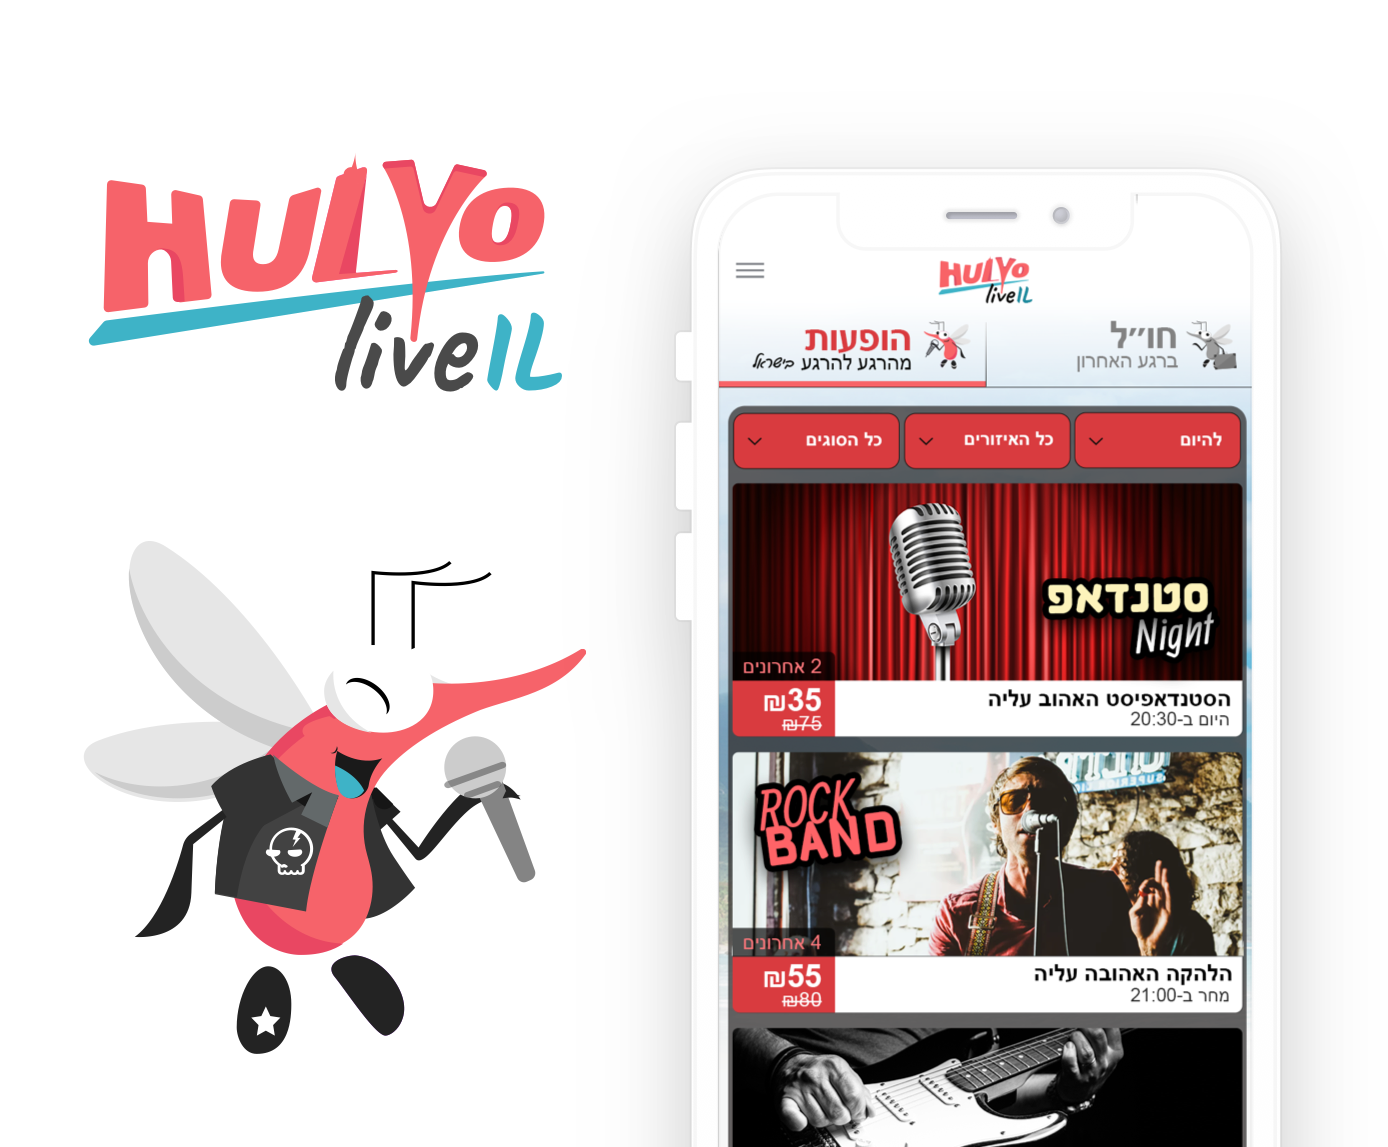 Hulyo Live IL Last Minute Shows Brand & App